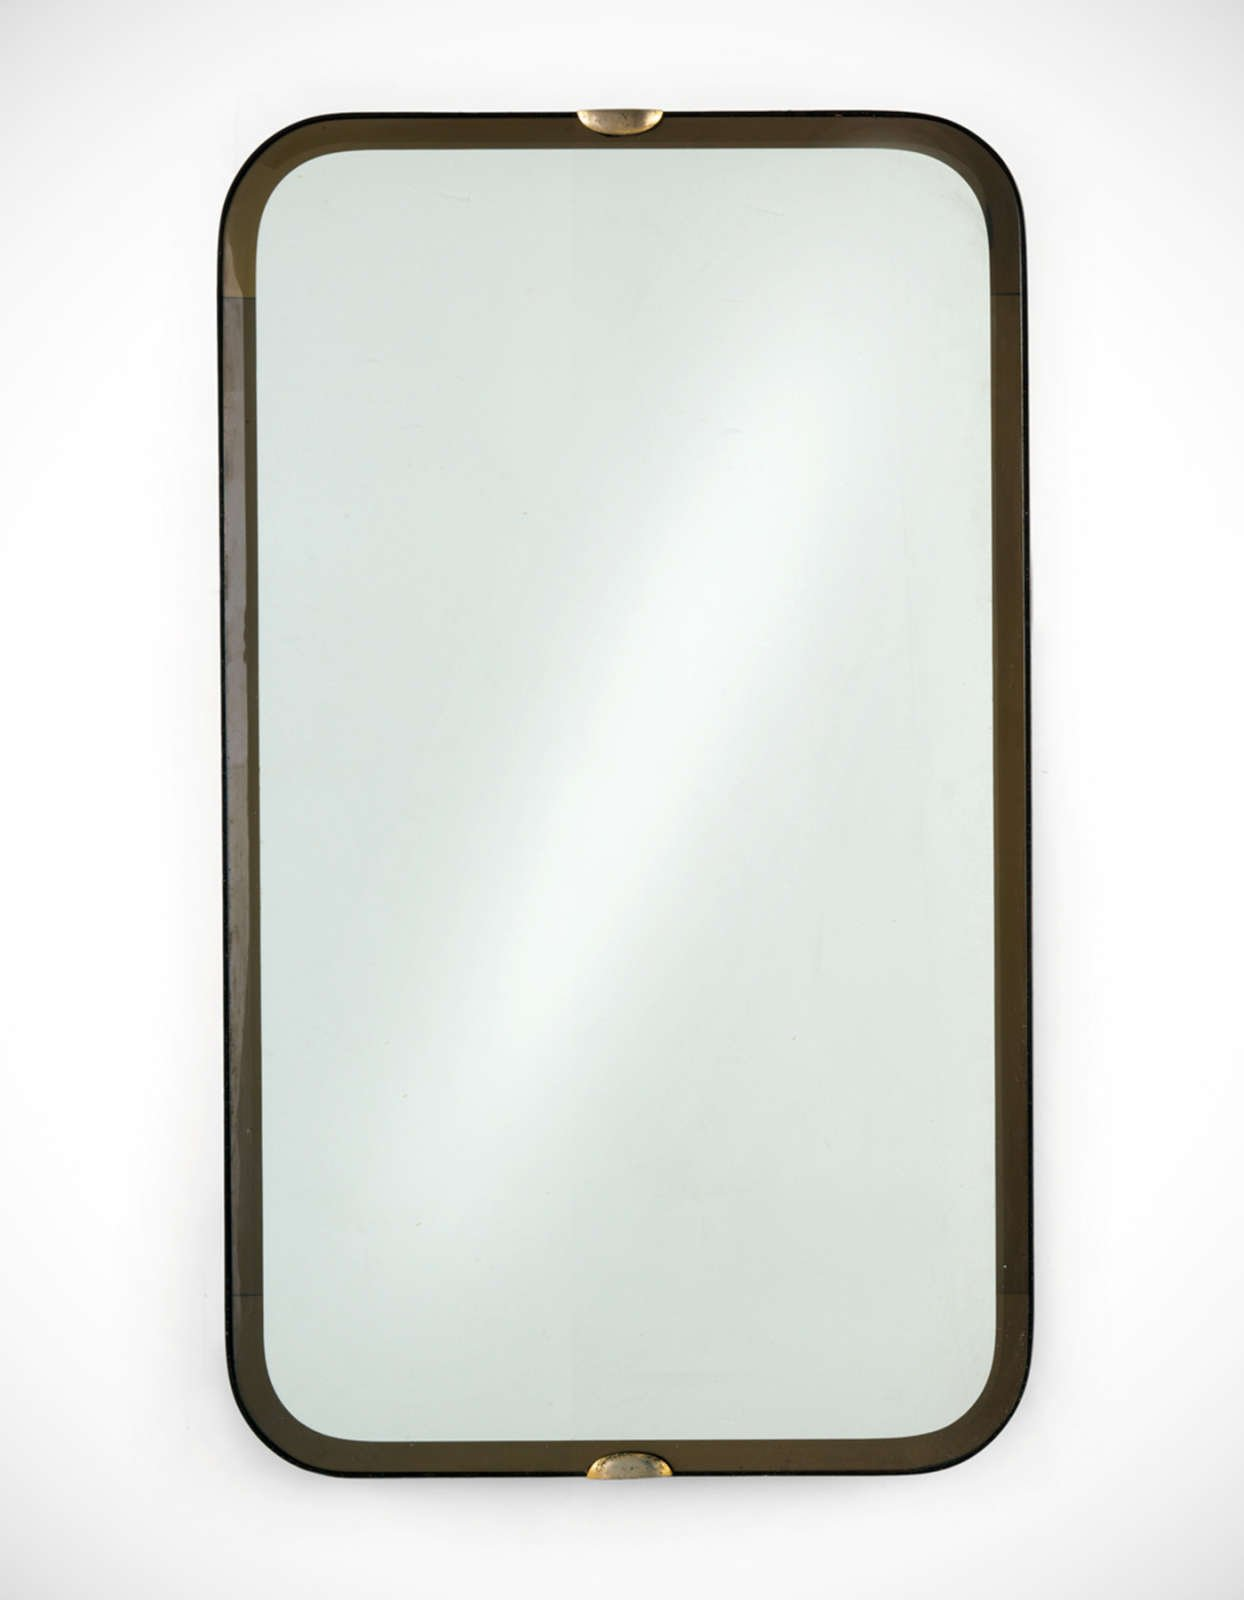 Pietro Chiesa |  Mirror for Fontana Arte